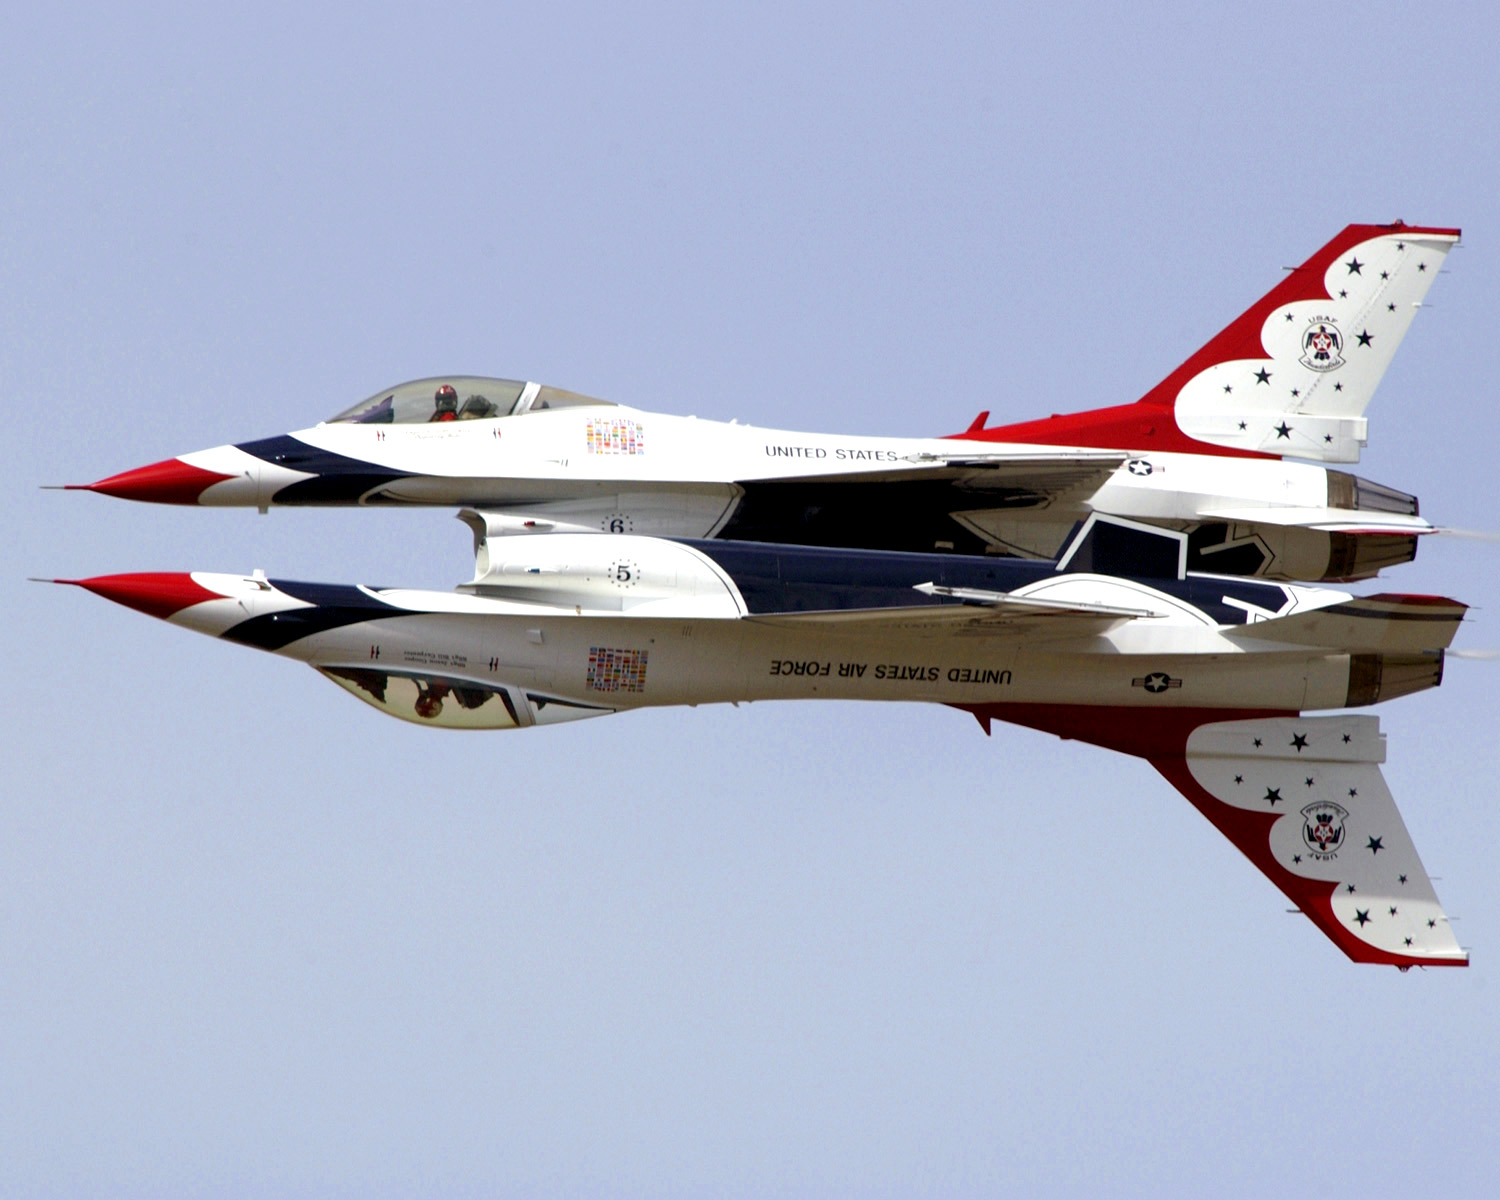 nellis afb senior dating site Thunderbirds release 2012 show schedule  nellis afb, nev we are excited  dating back to 1953 when the team flew the straight-winged f-84g thunderjets.